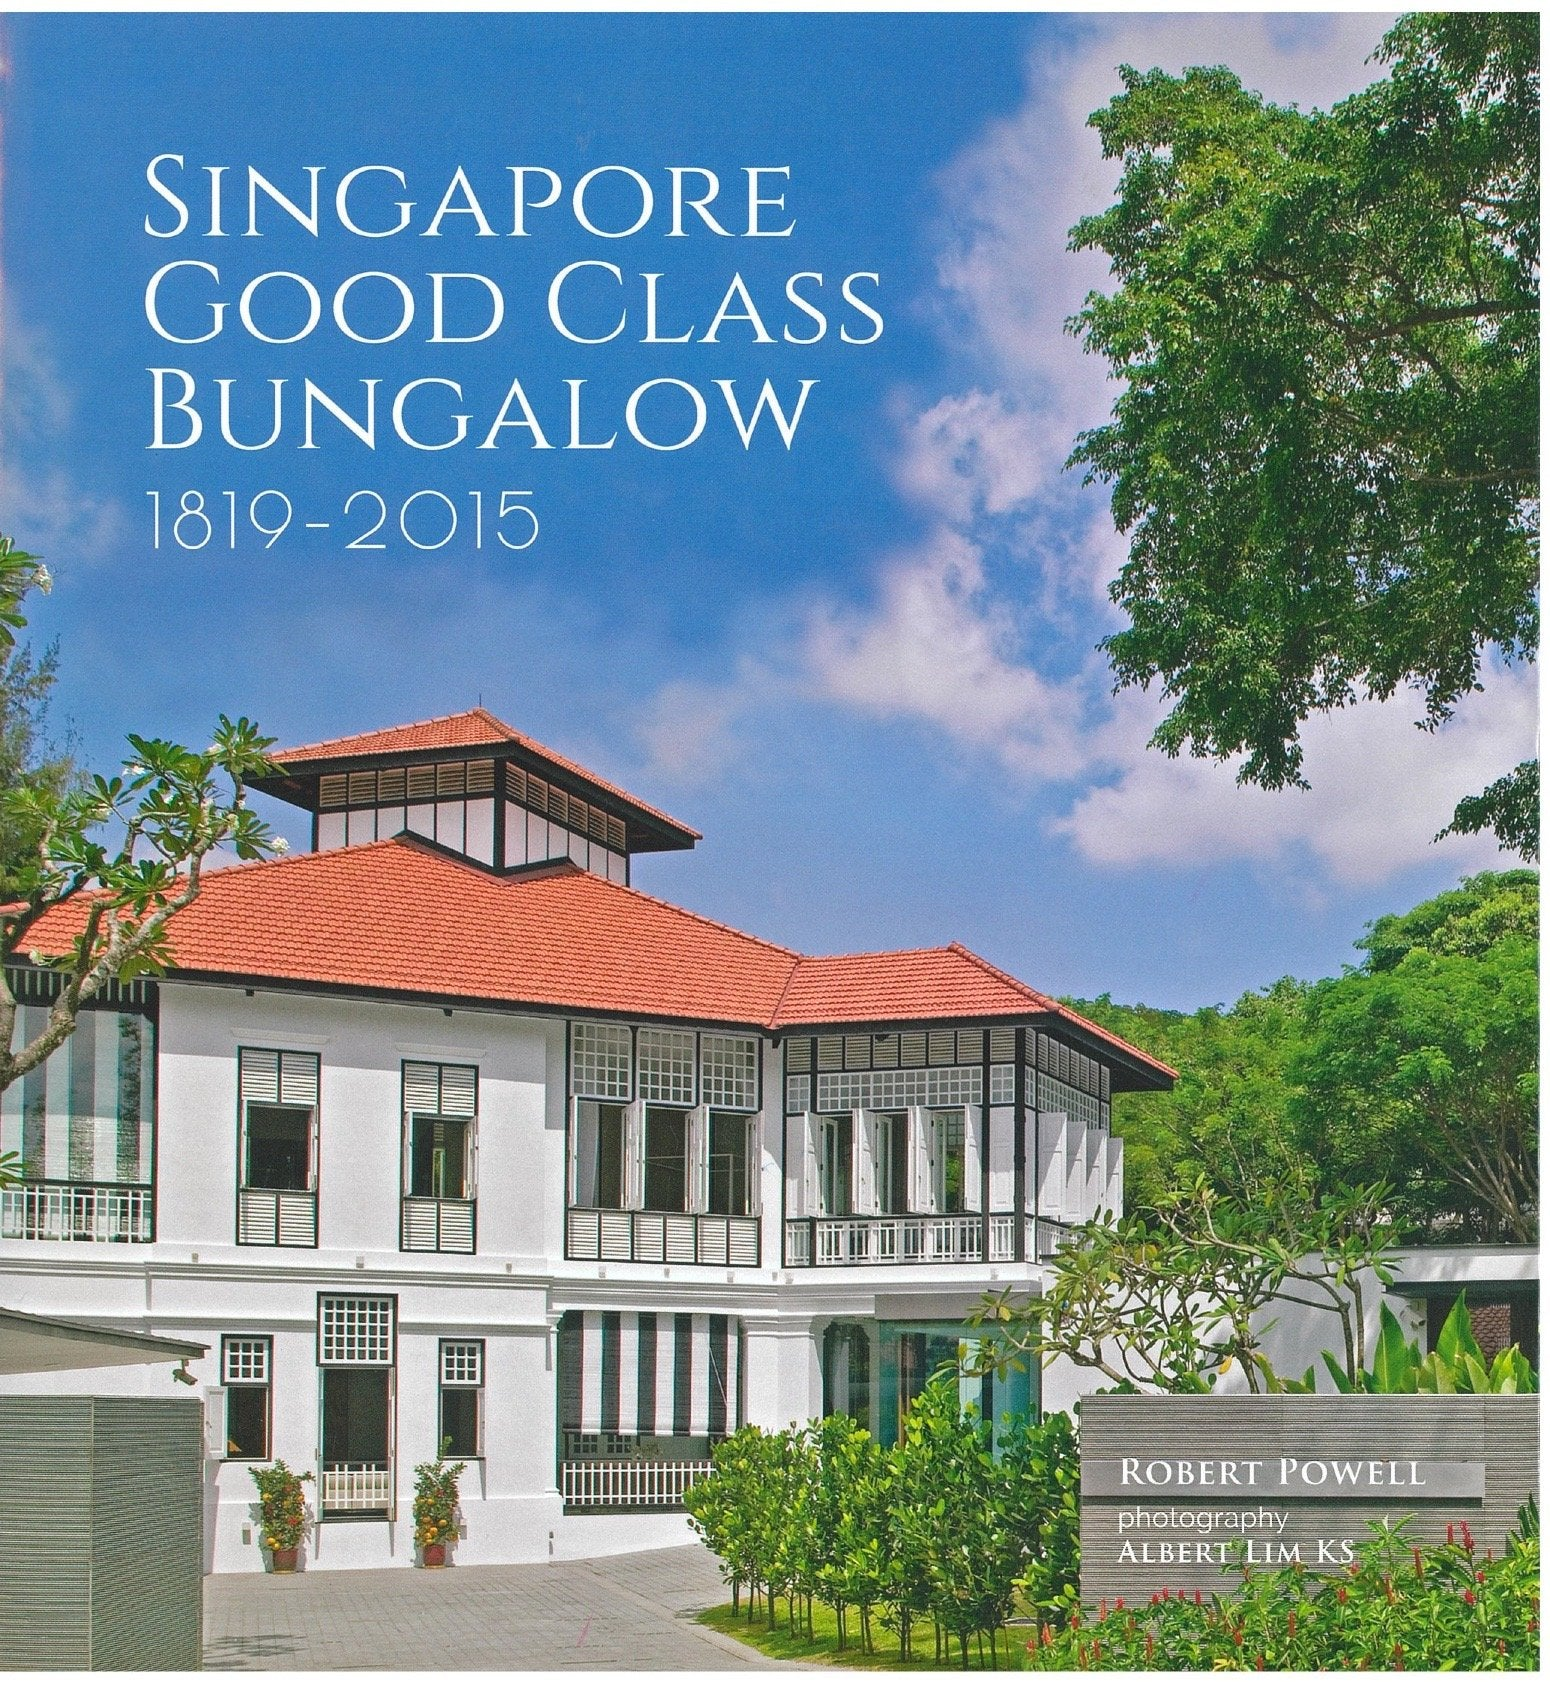 Singapore: Good Class Bungalow